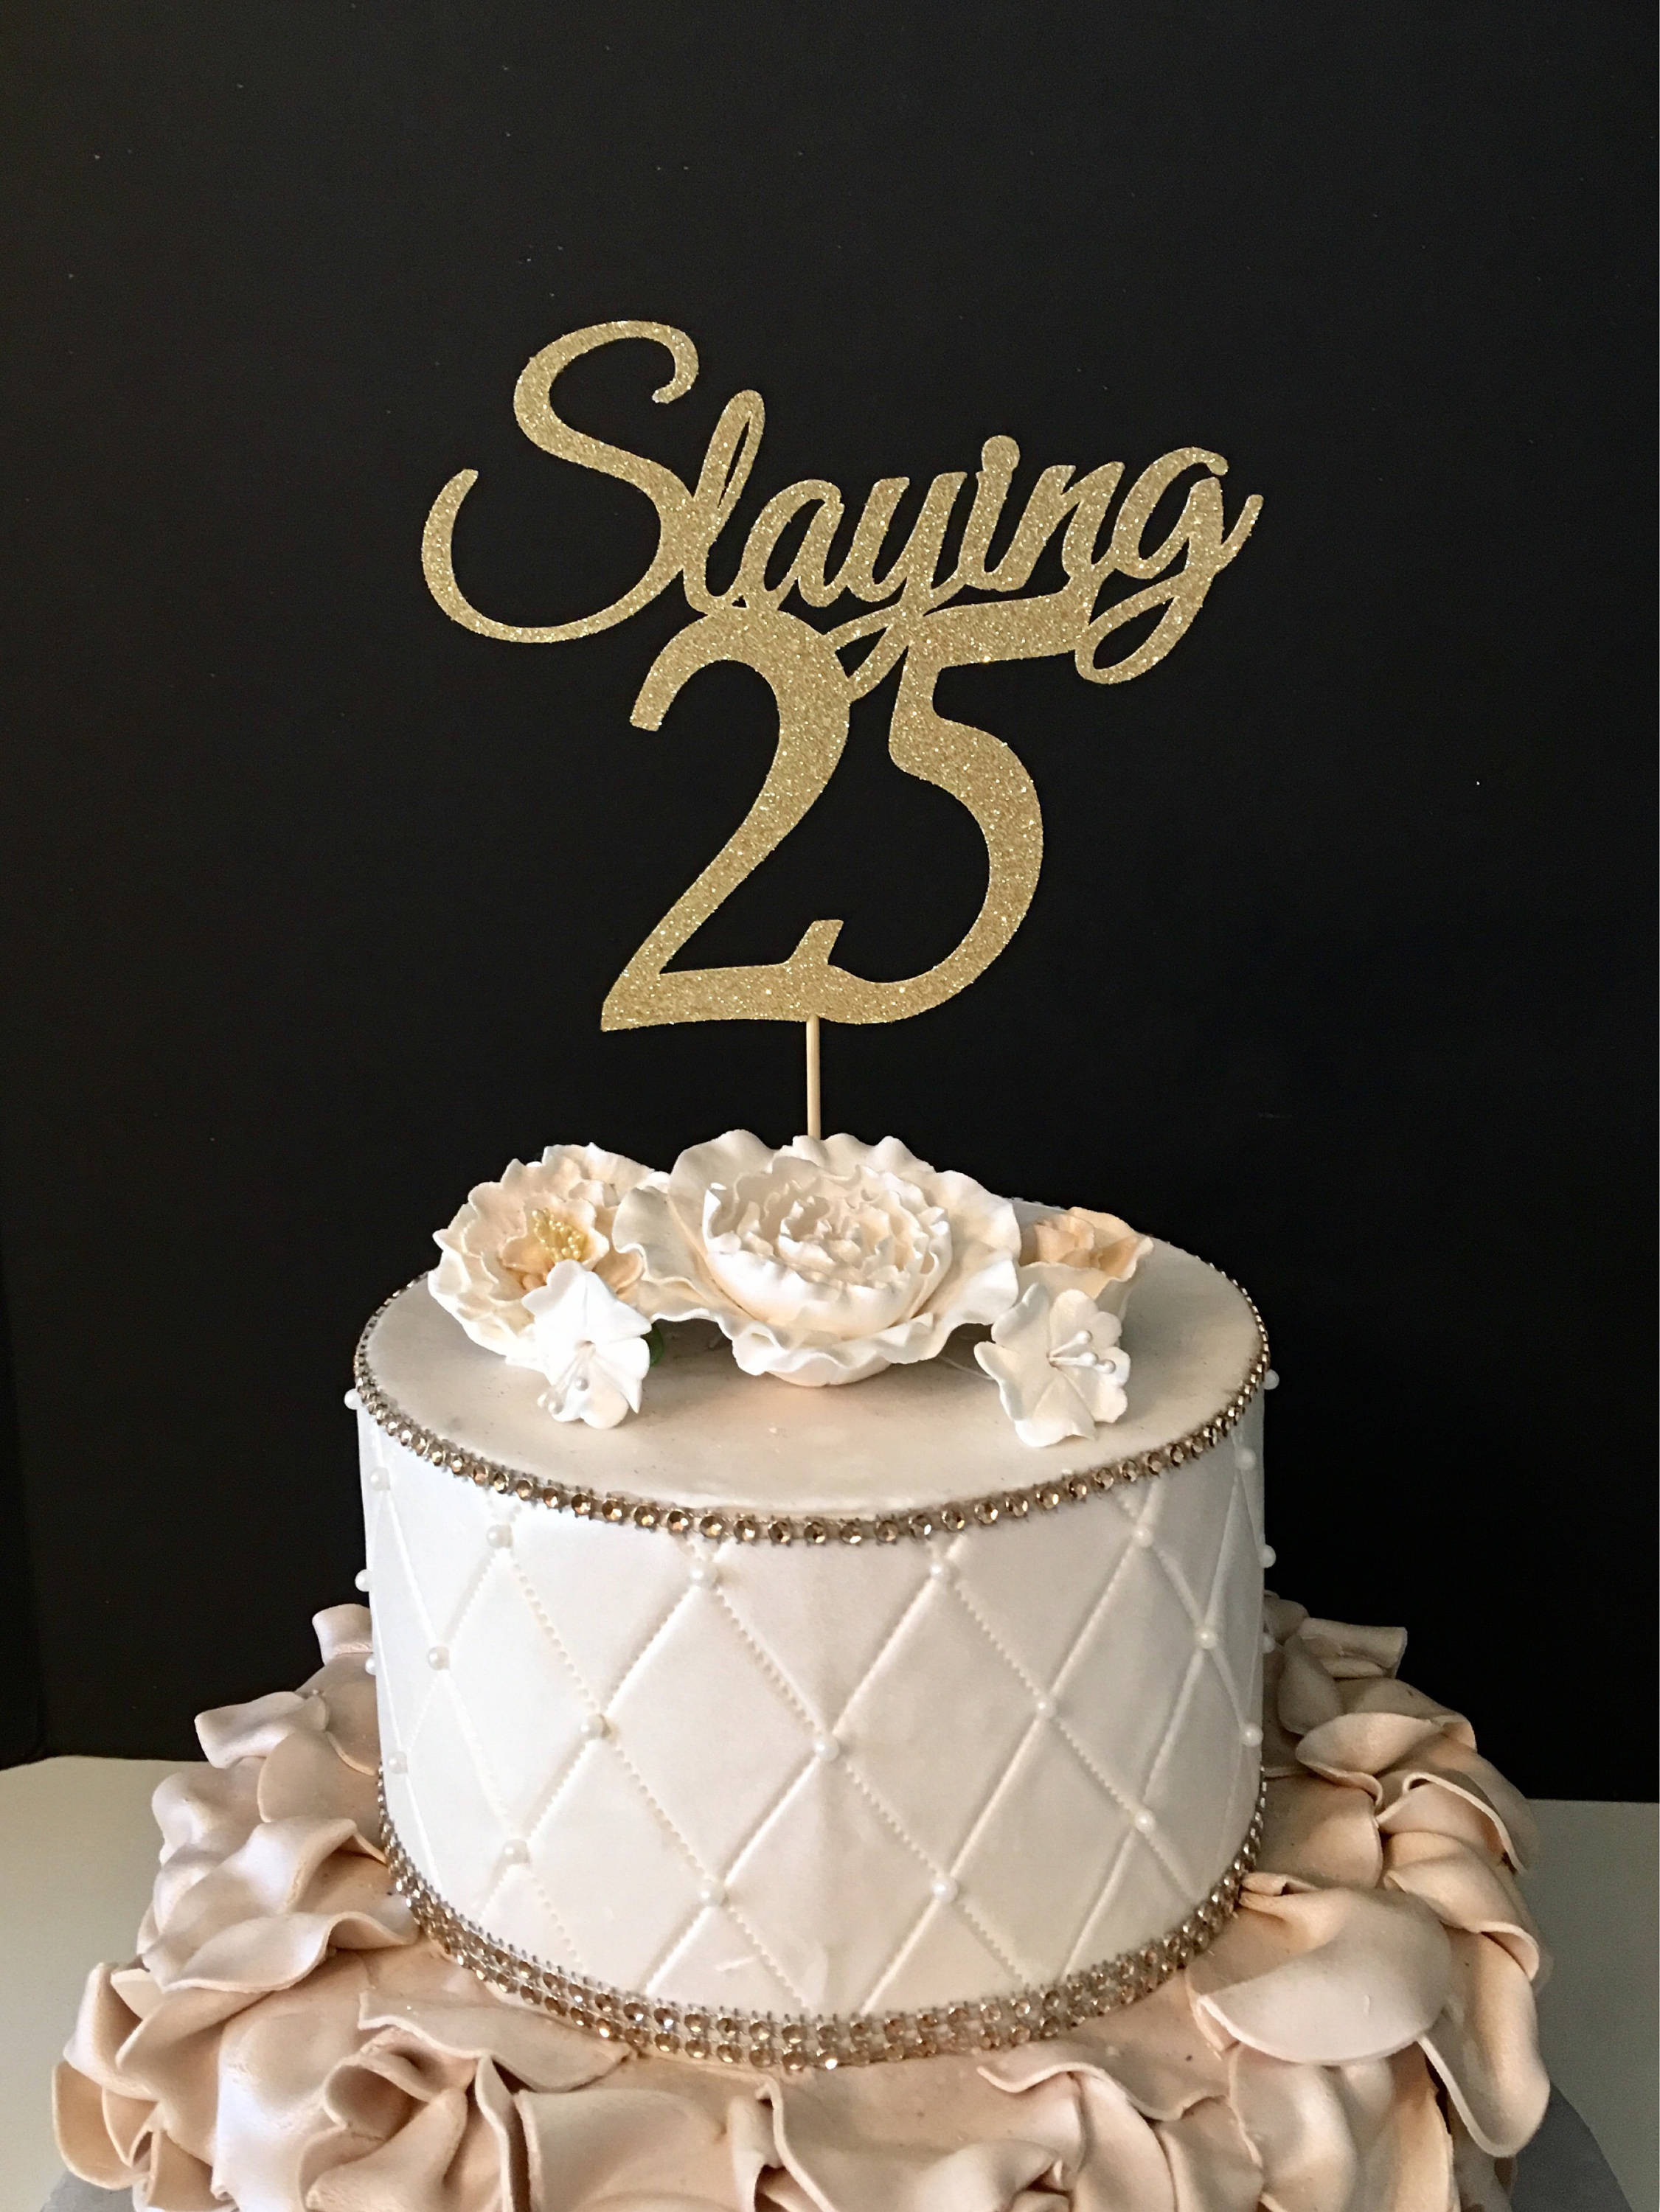 Best ideas about 25 Birthday Cake . Save or Pin ANY NUMBER Gold Glitter 25th Birthday Cake Topper Slaying 25 Now.